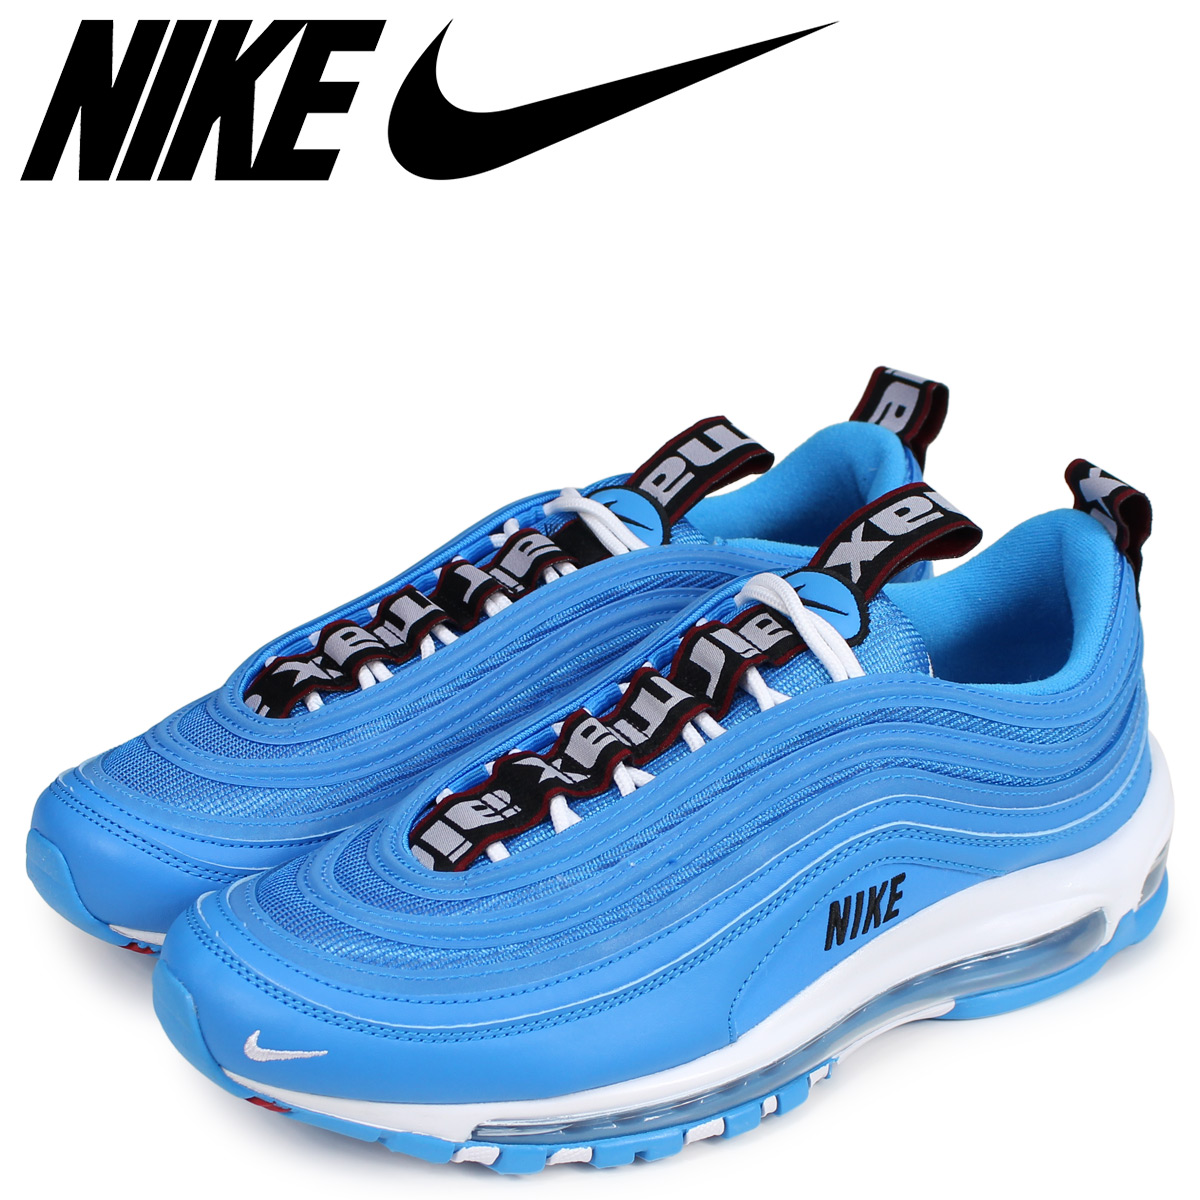 4e65c0556feab NIKE Kie Ney AMAX 97 sneakers men AIR MAX 97 PREMIUM blue 312,834-401 ...